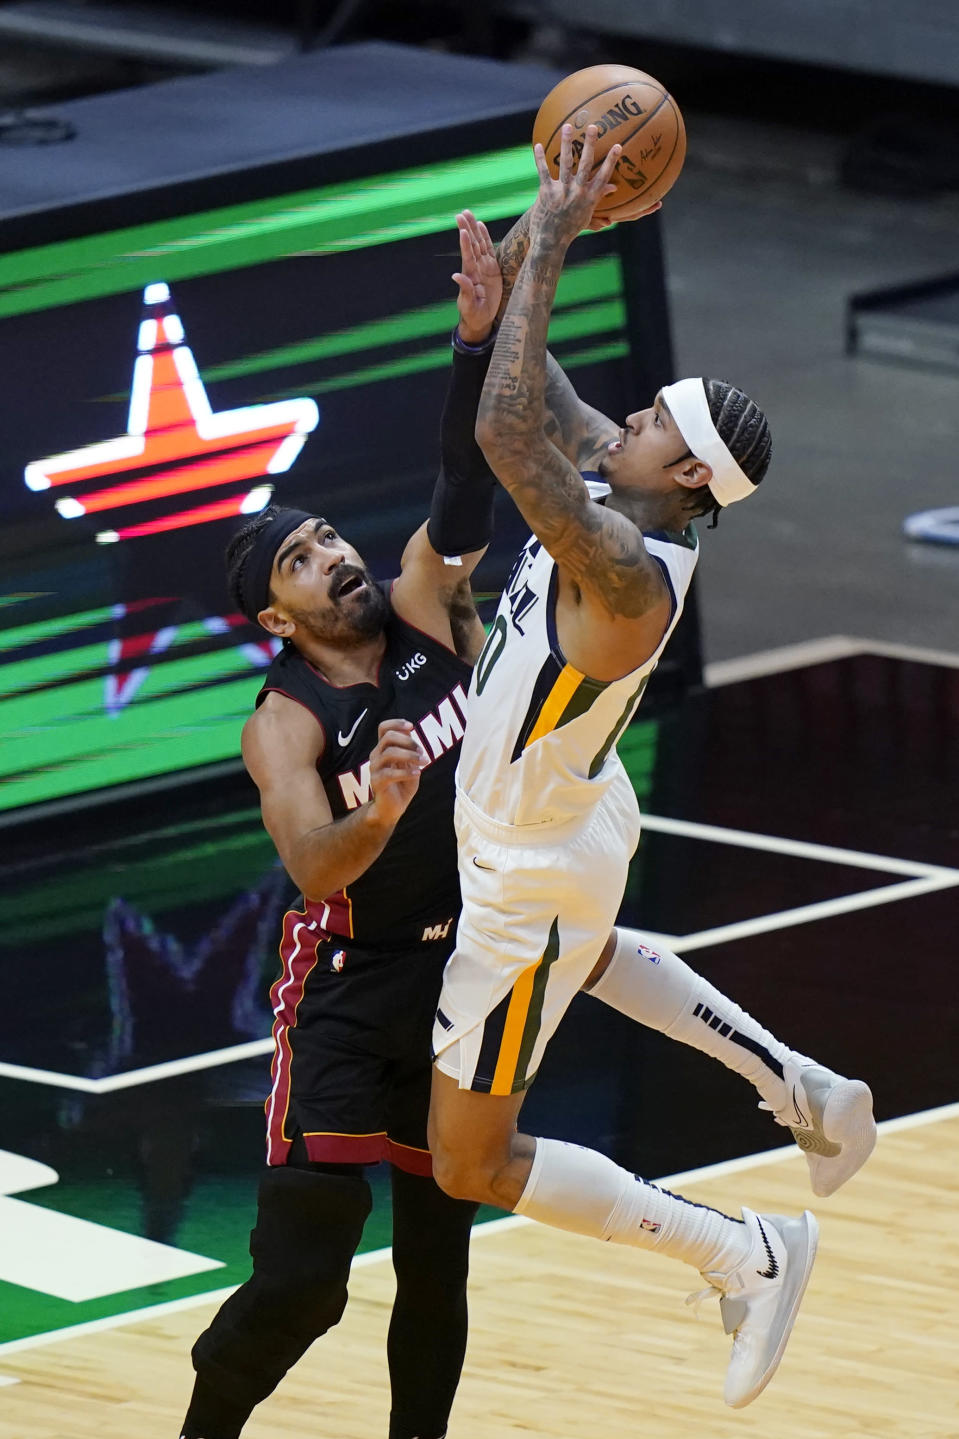 Utah Jazz guard Jordan Clarkson, right, shoots as Miami Heat guard Gabe Vincent defends during the first half of an NBA basketball game, Friday, Feb. 26, 2021, in Miami. (AP Photo/Lynne Sladky)